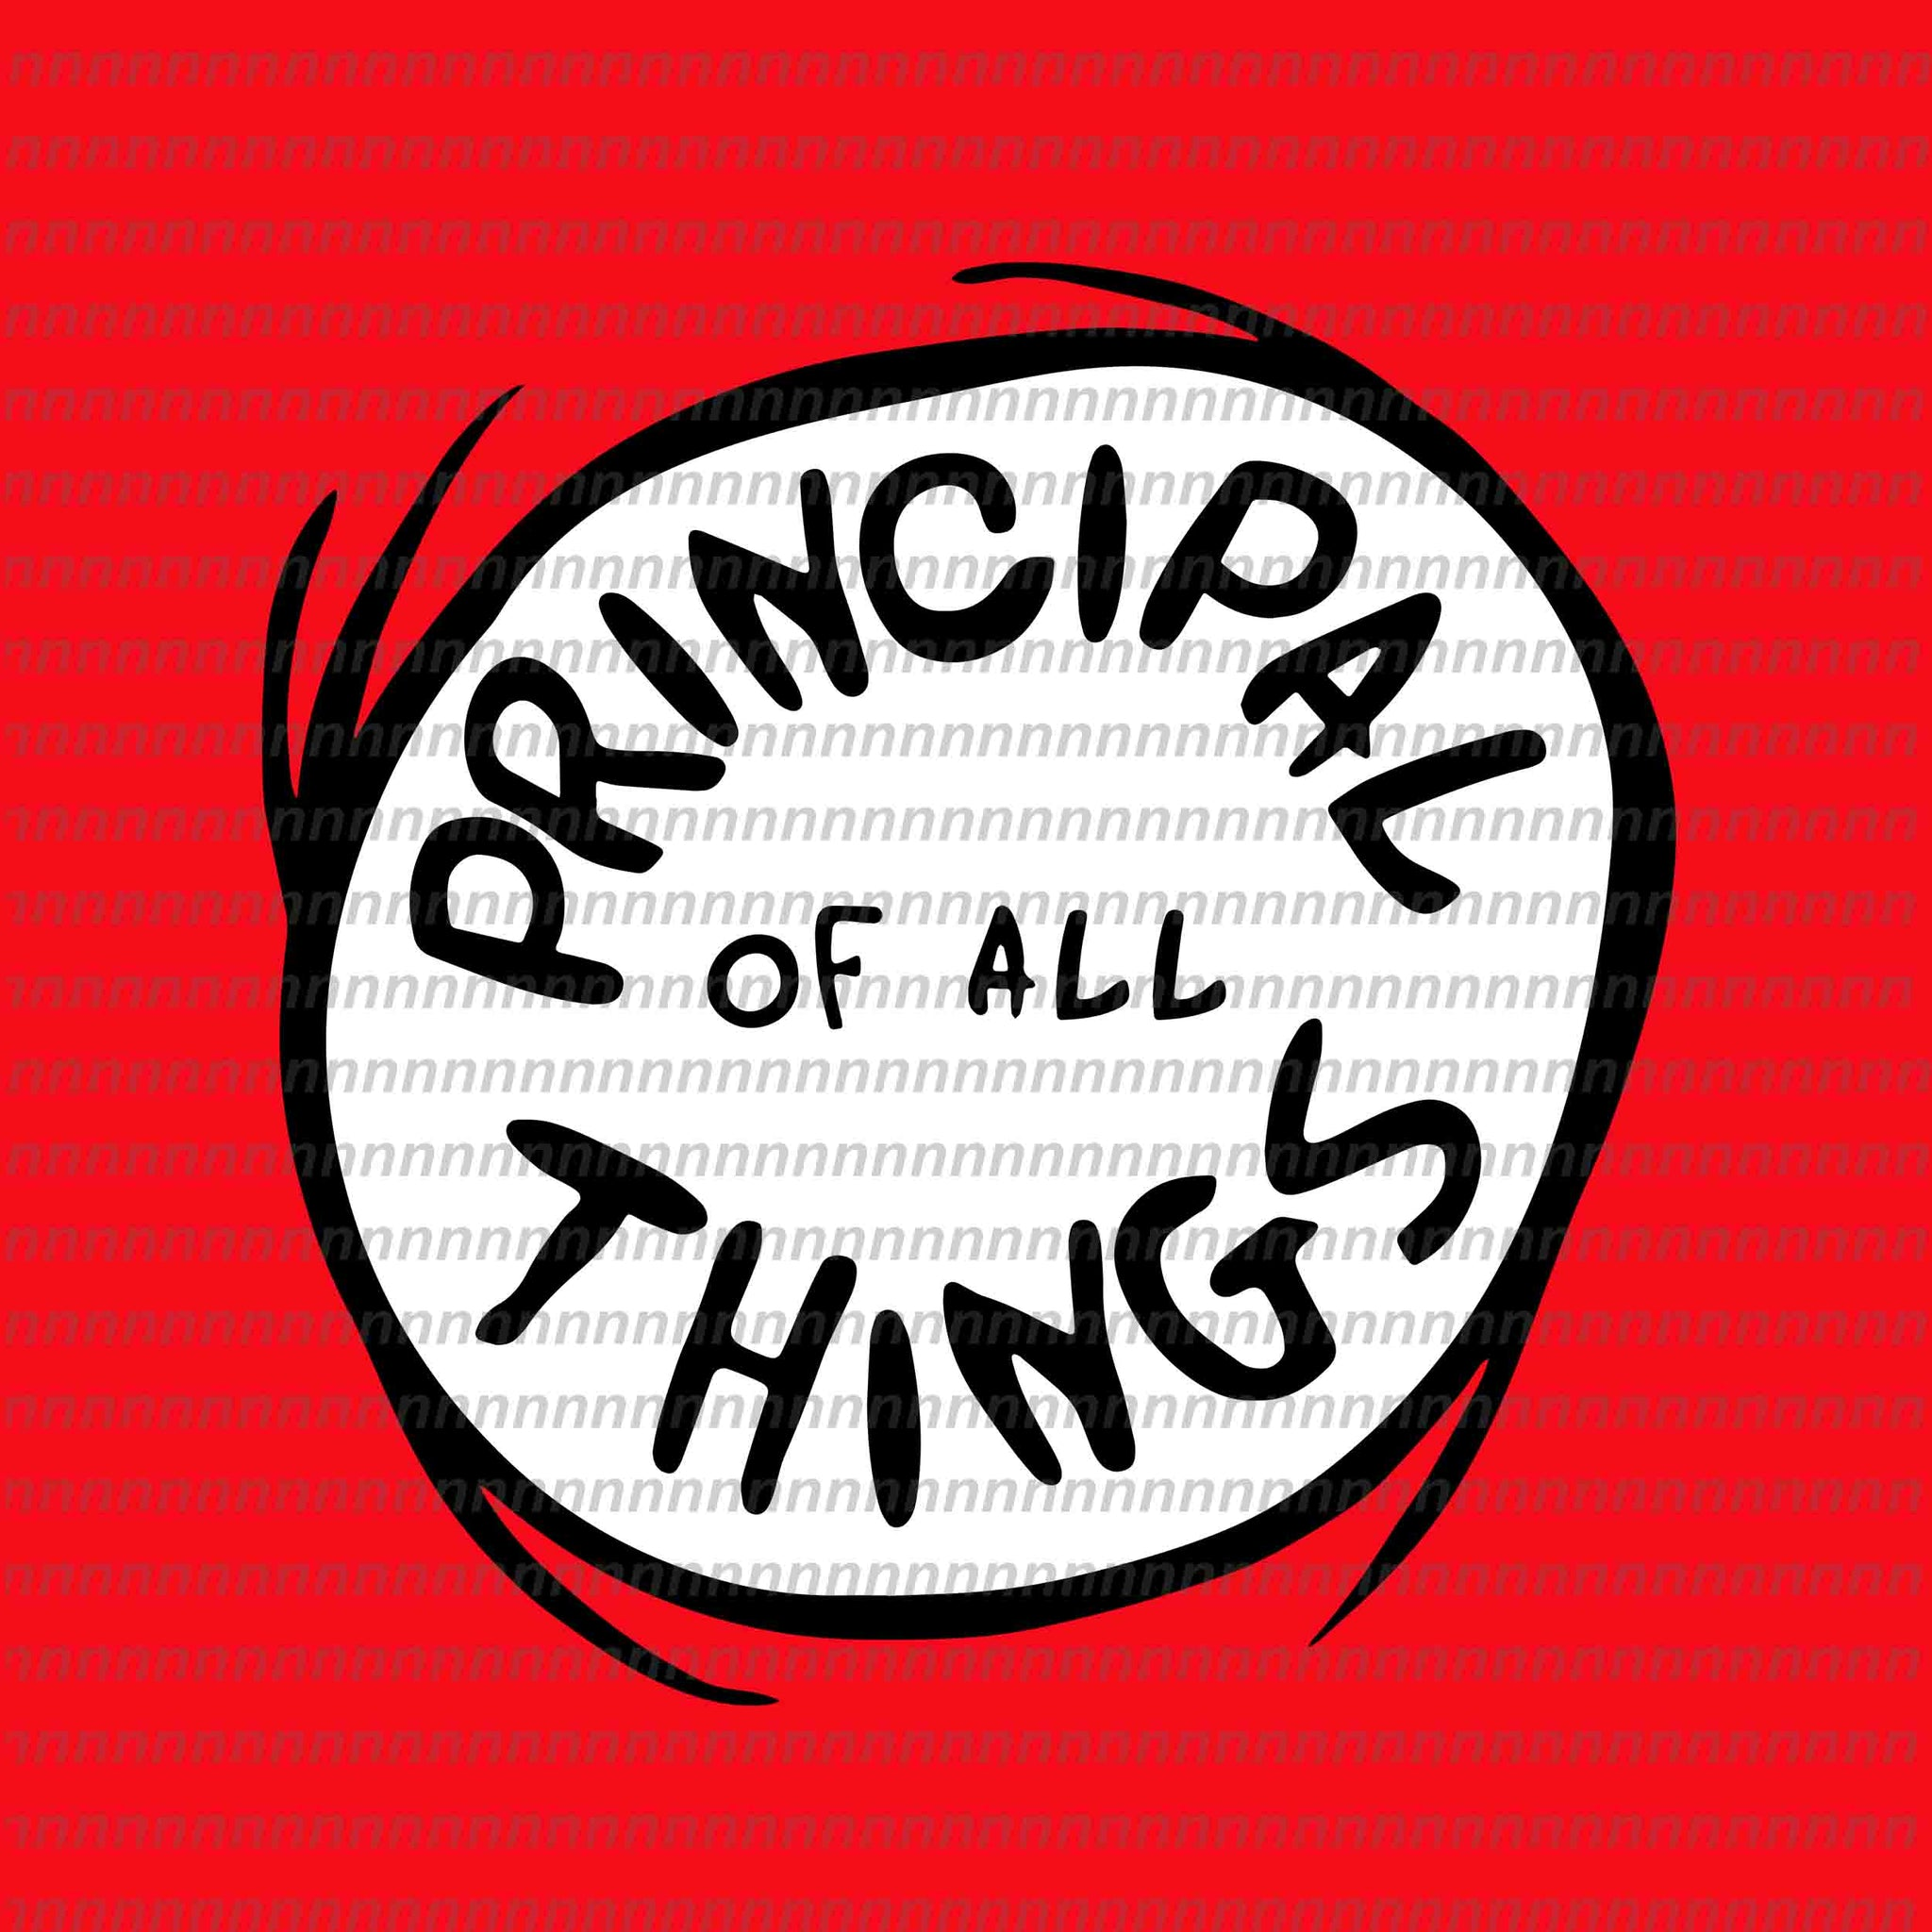 Principal of all things svg, dr seuss svg,dr seuss vector, dr seuss quote, dr seuss design, Cat in the hat svg, thing 1 thing 2 thing 3, svg, png, dxf, eps file